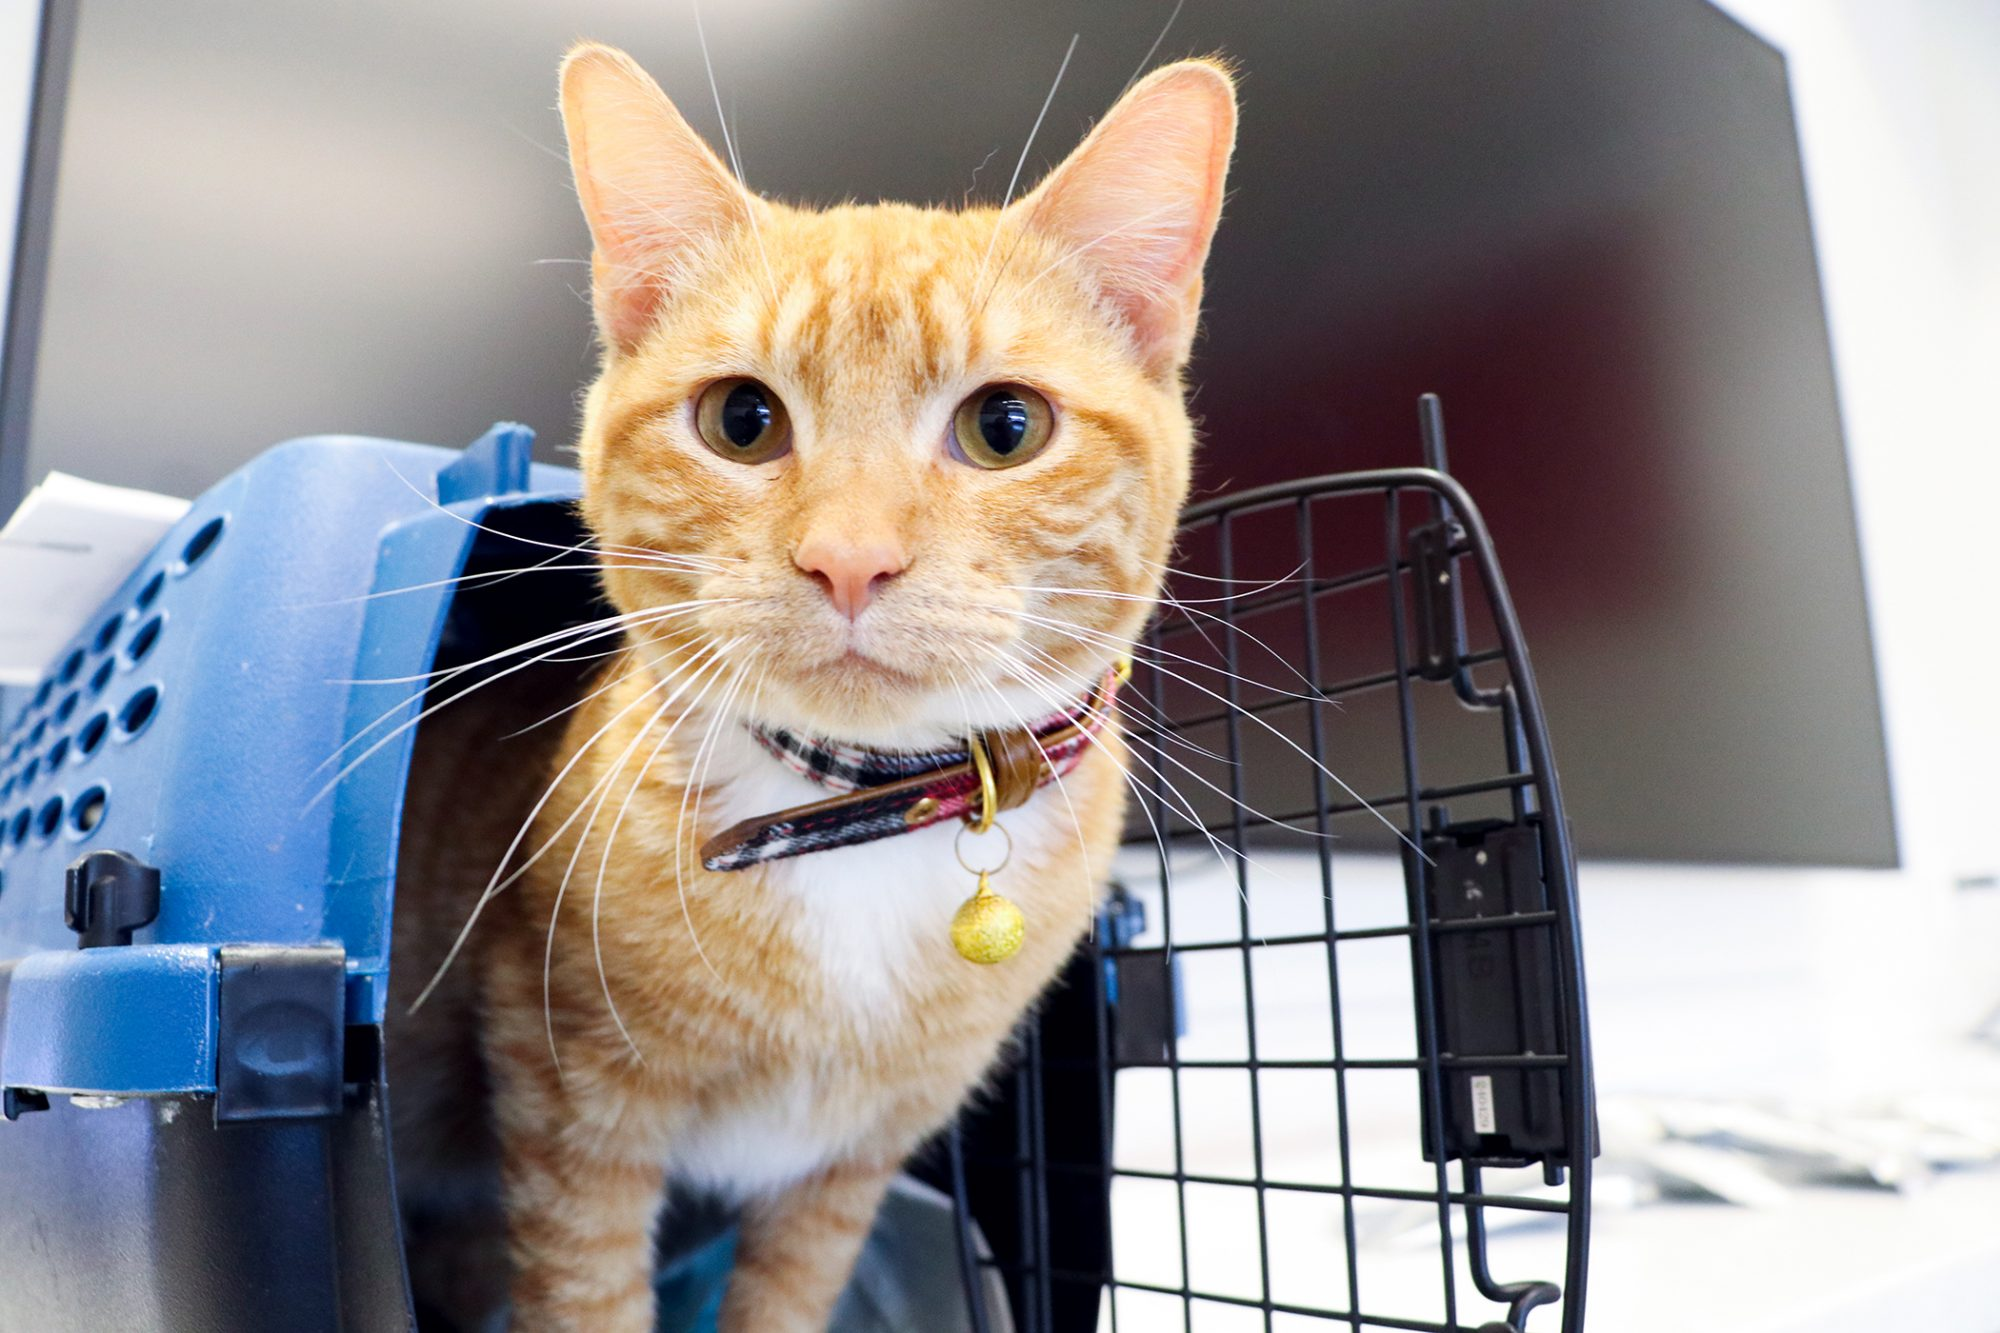 Orange tabby cat pokes head out of cat carrier to greet camera